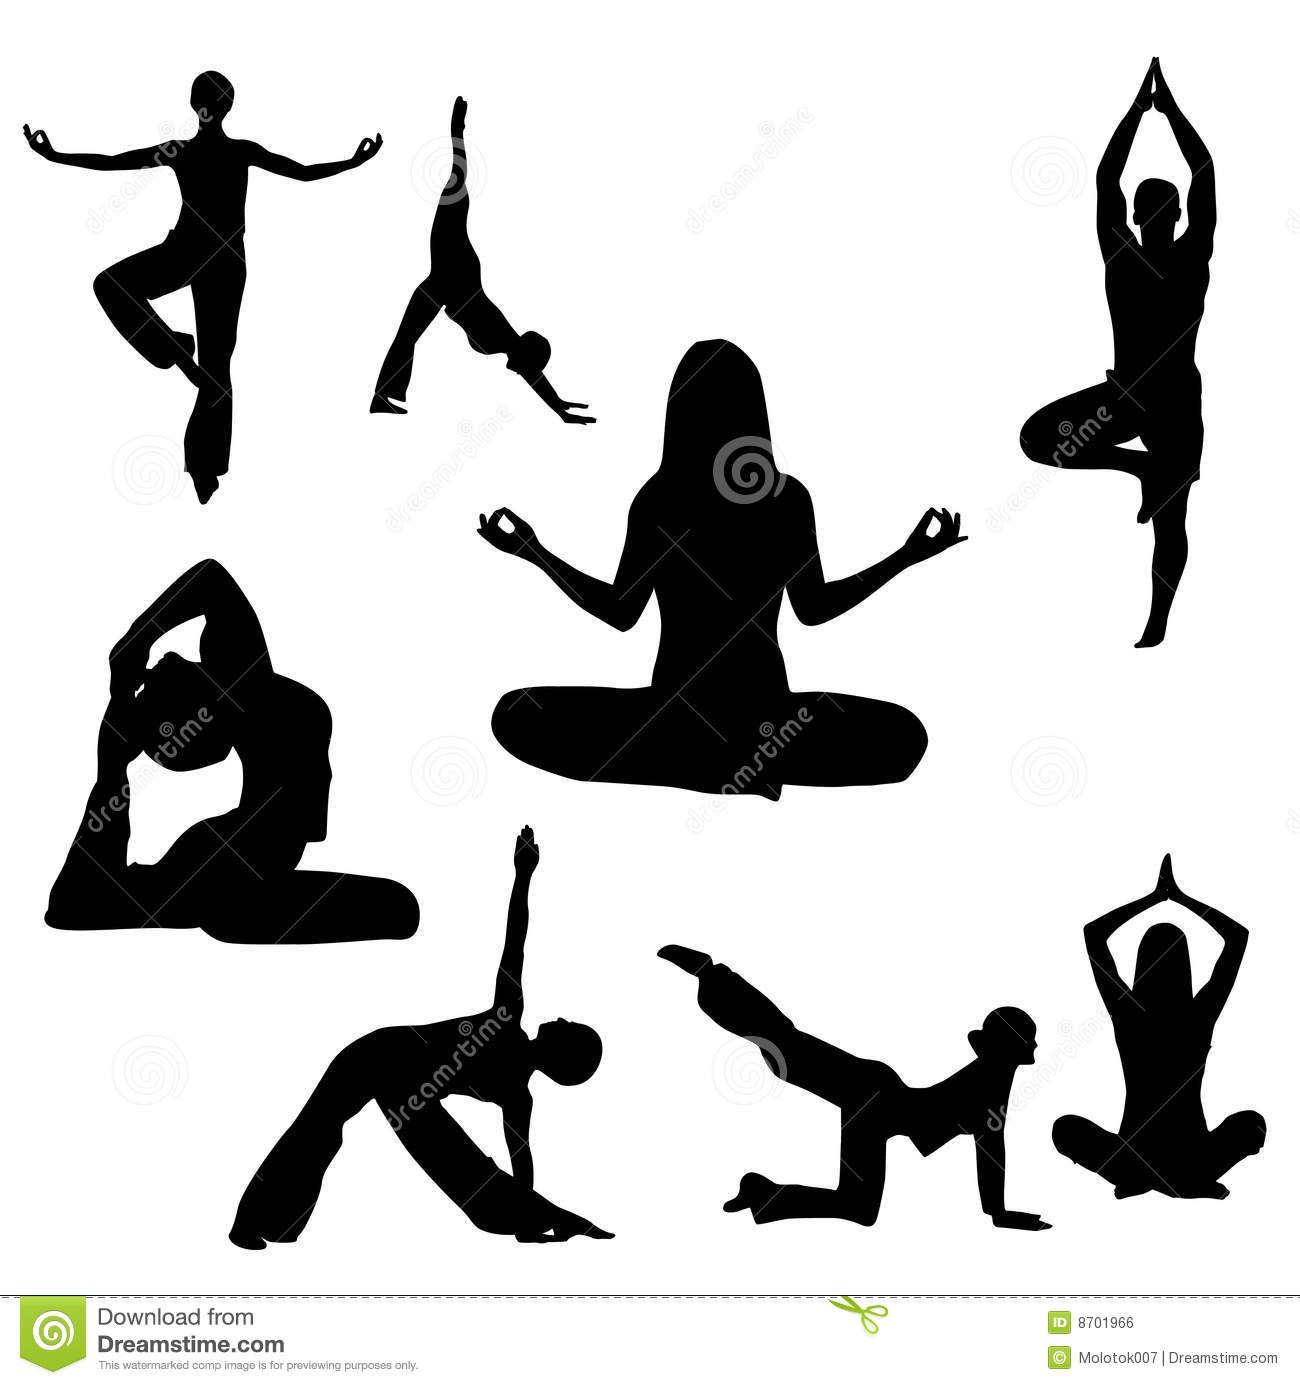 Yoga Illustration Royalty Free Stock Image - Image: 8701966